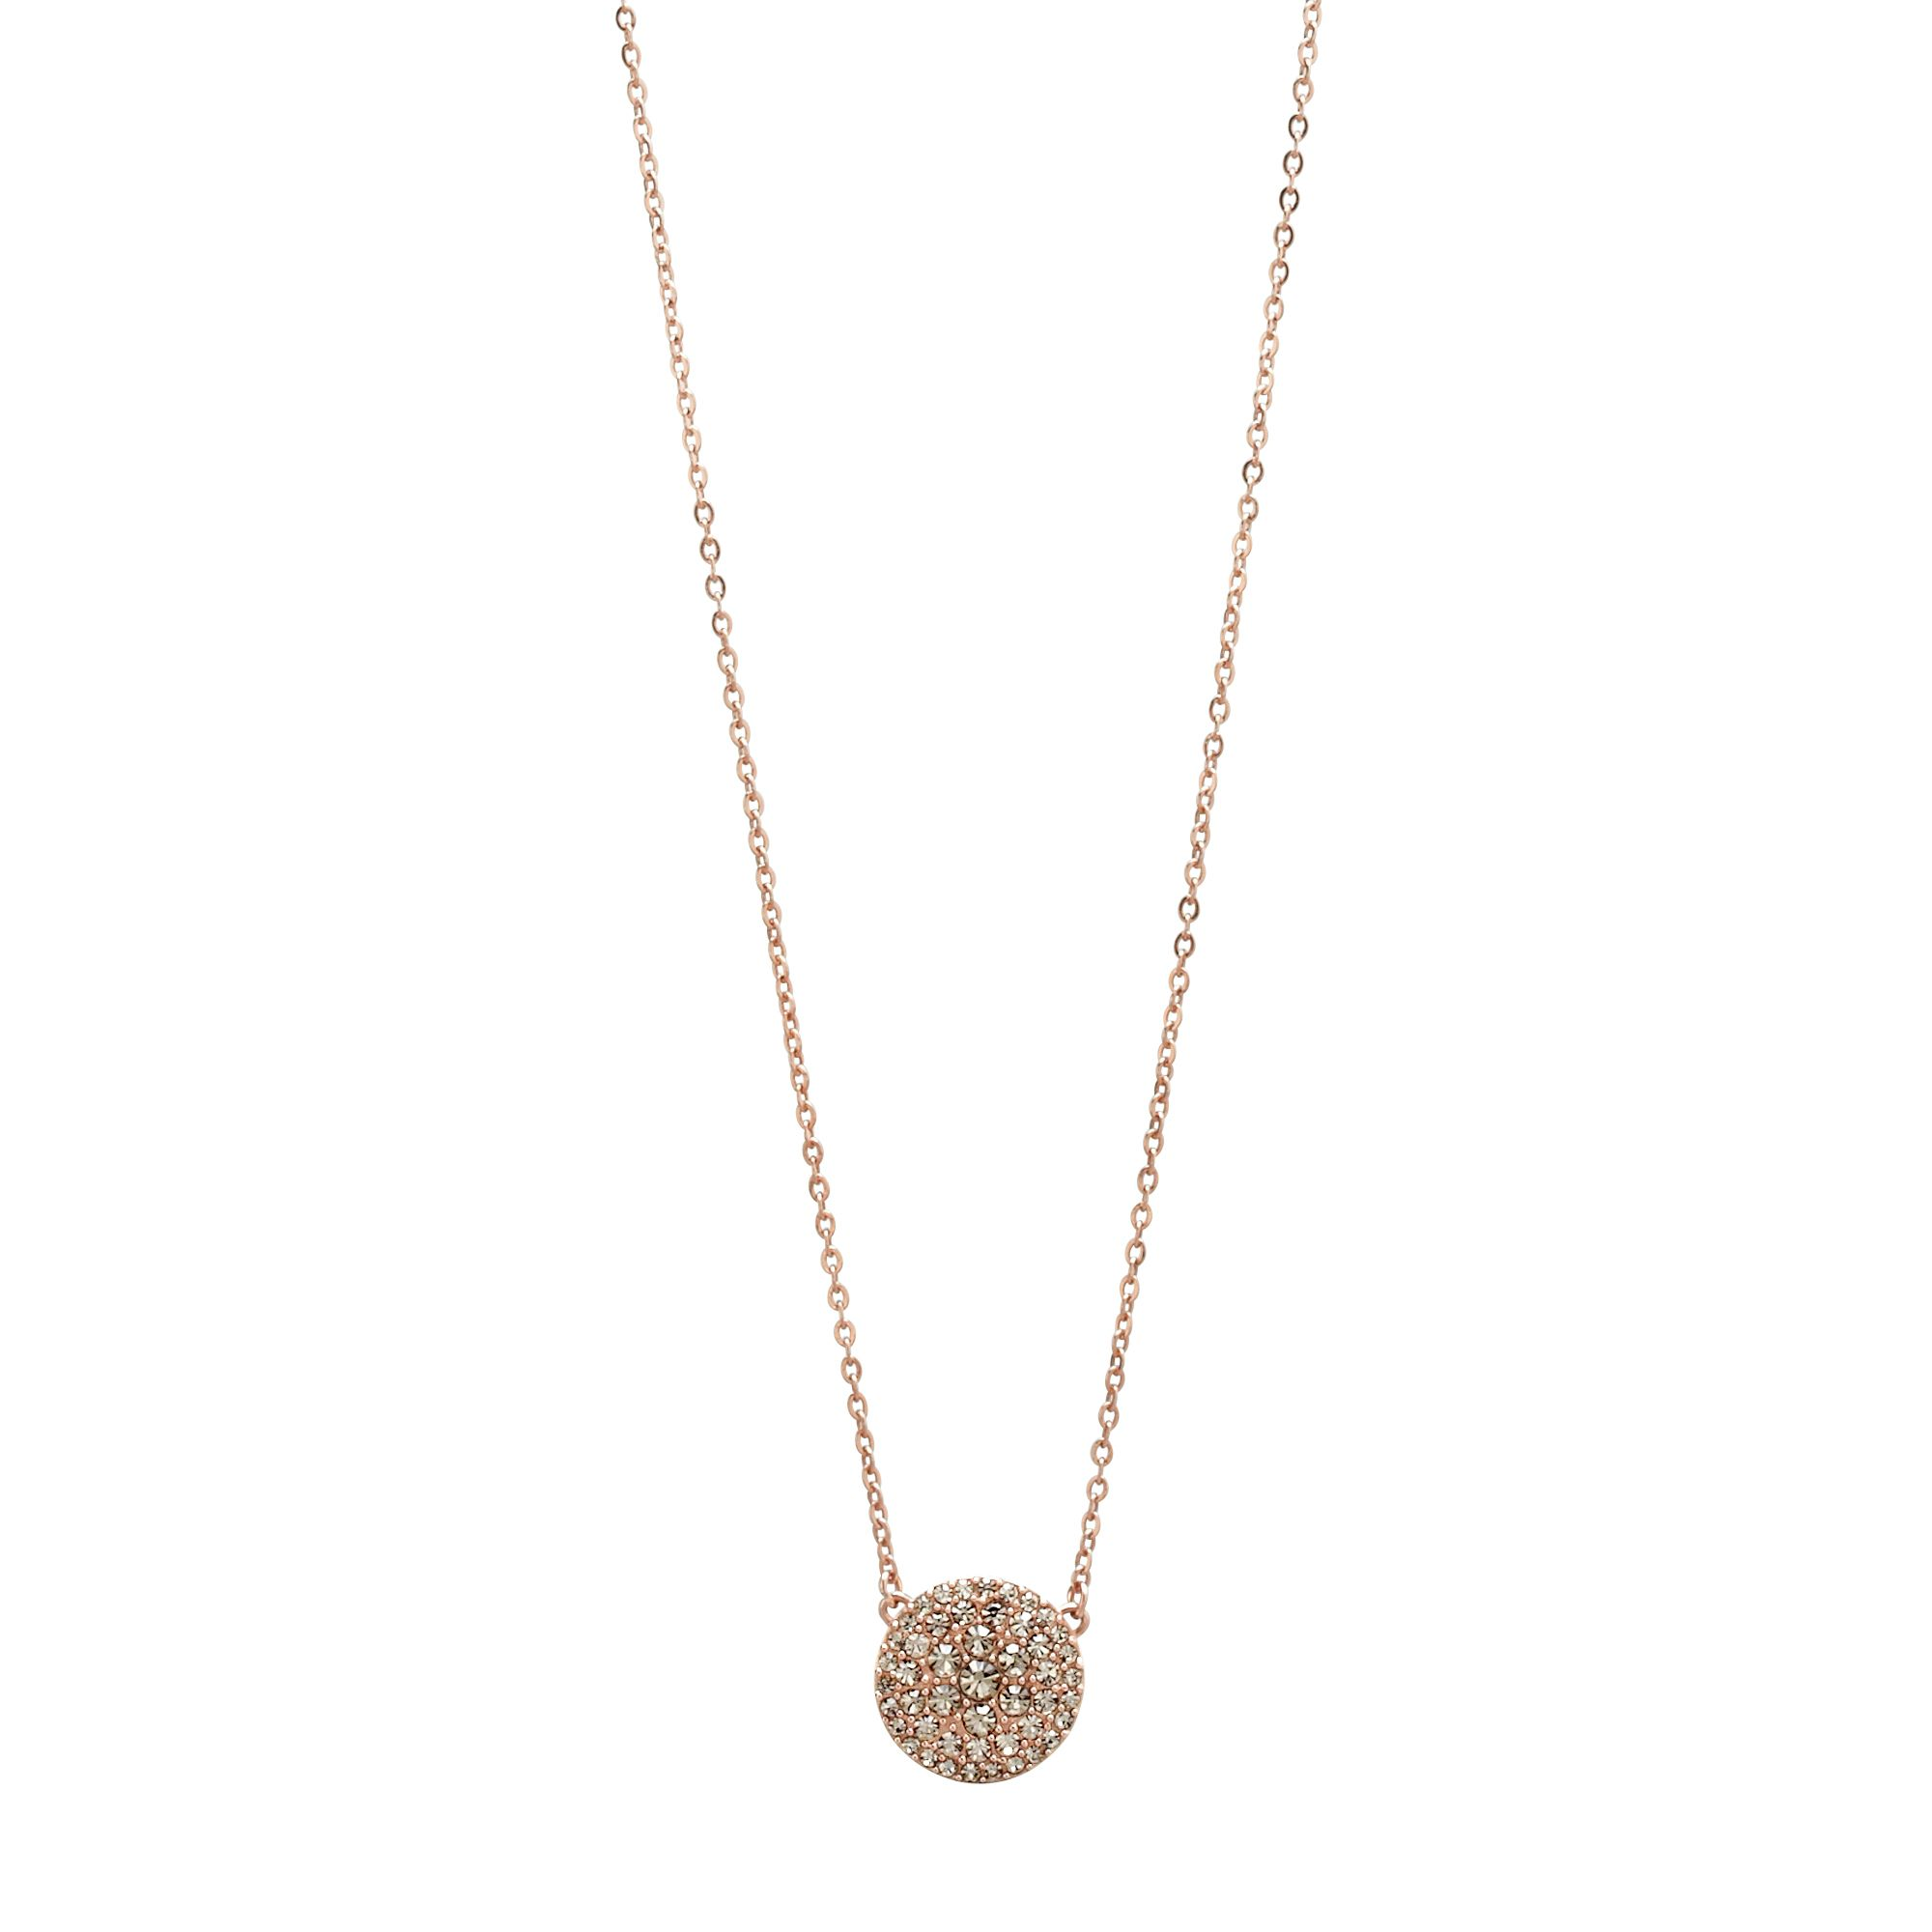 Jf00139791 Ladies rose iconic glitz necklace